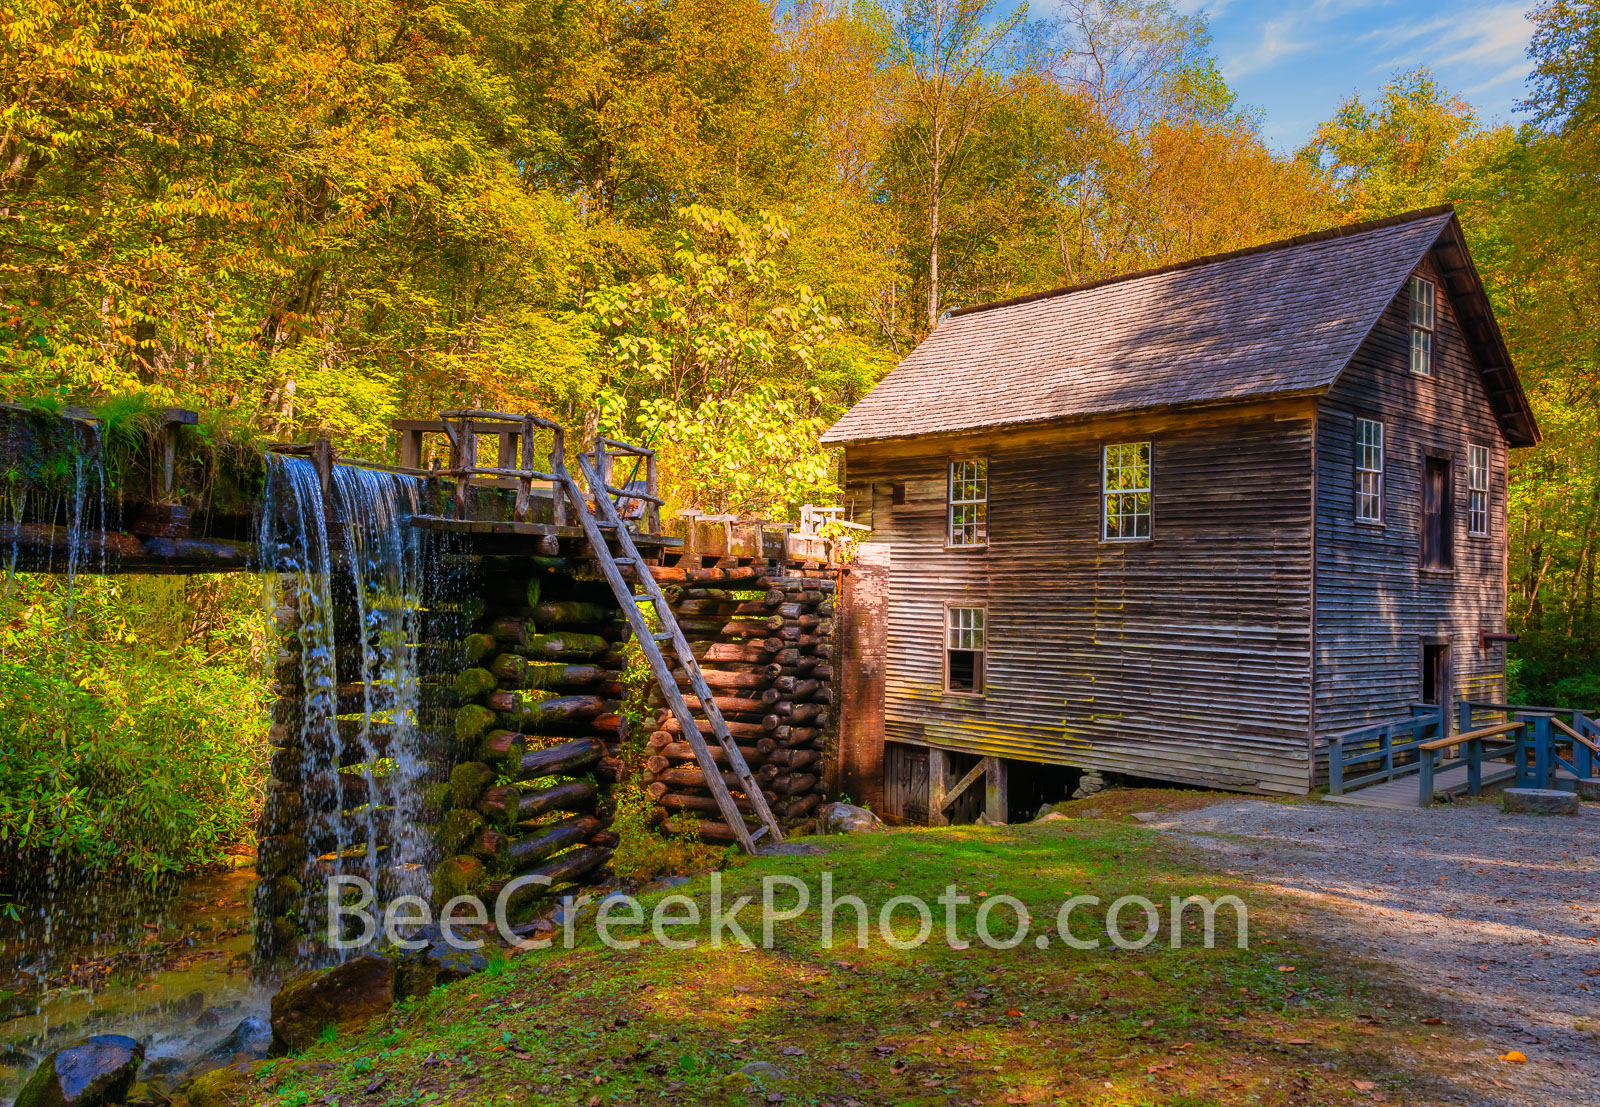 Mingus Mill, Smoky Mountains, gristmill, turbine, fall colors, autumn, waterfall, waterwheel, water, cascading, wooden flume, smokies, nc, north carolina, cherokee, stream, creeks, corn, wheat, mill, photo